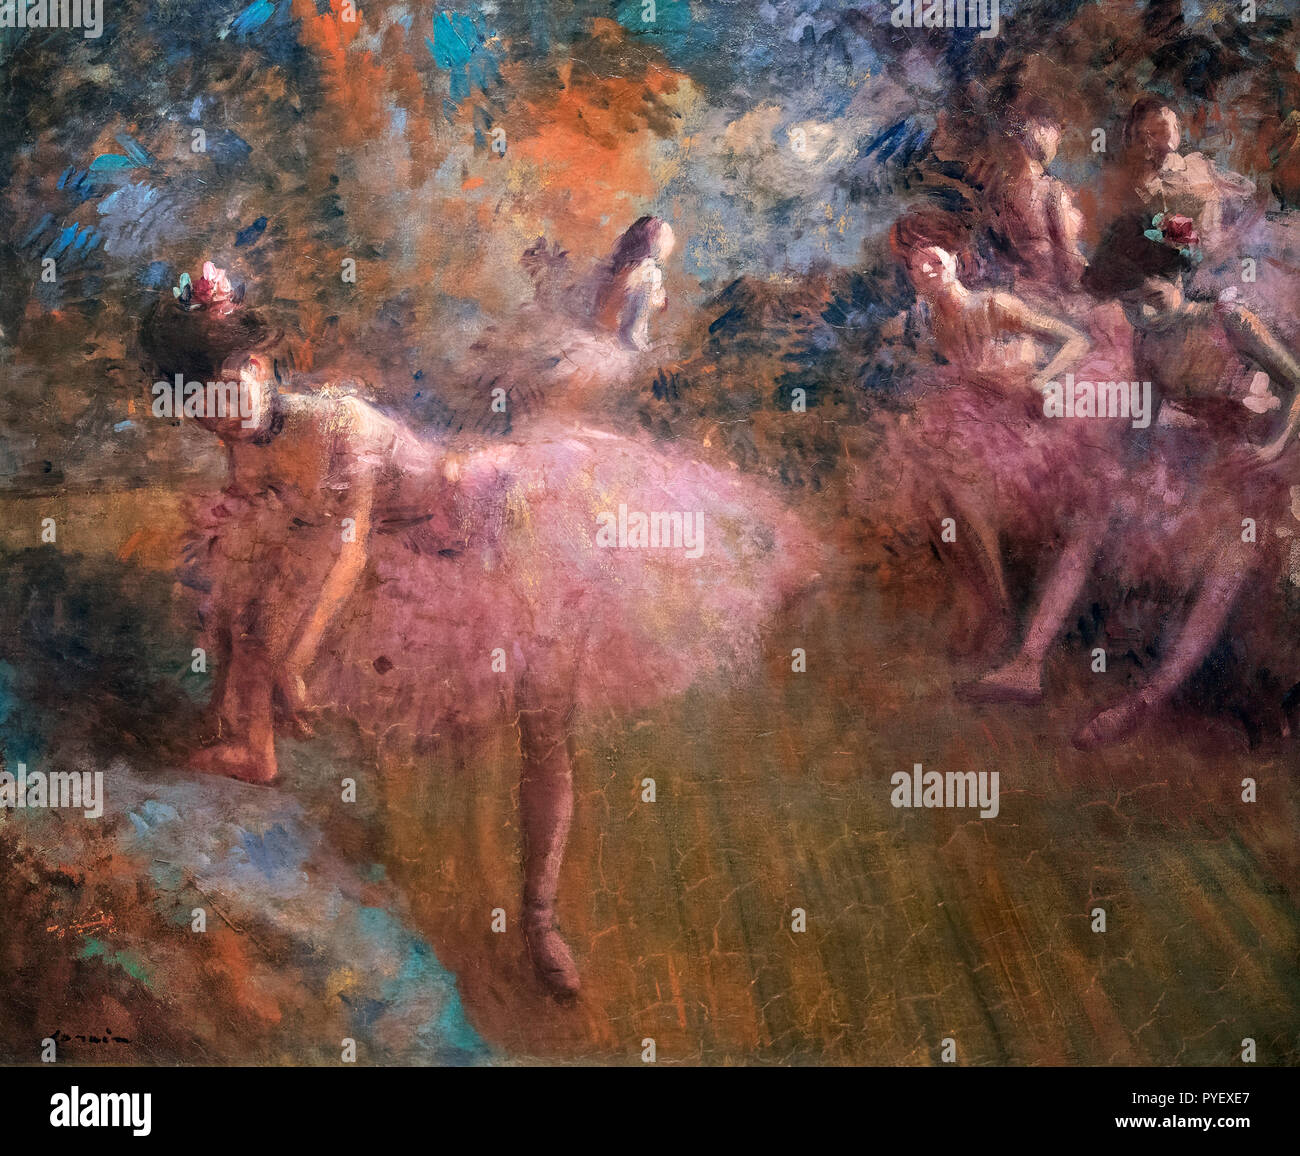 Dancers in Pink by Jean Louis Forain (1852-1931), oil on canvas, c.1905 - Stock Image